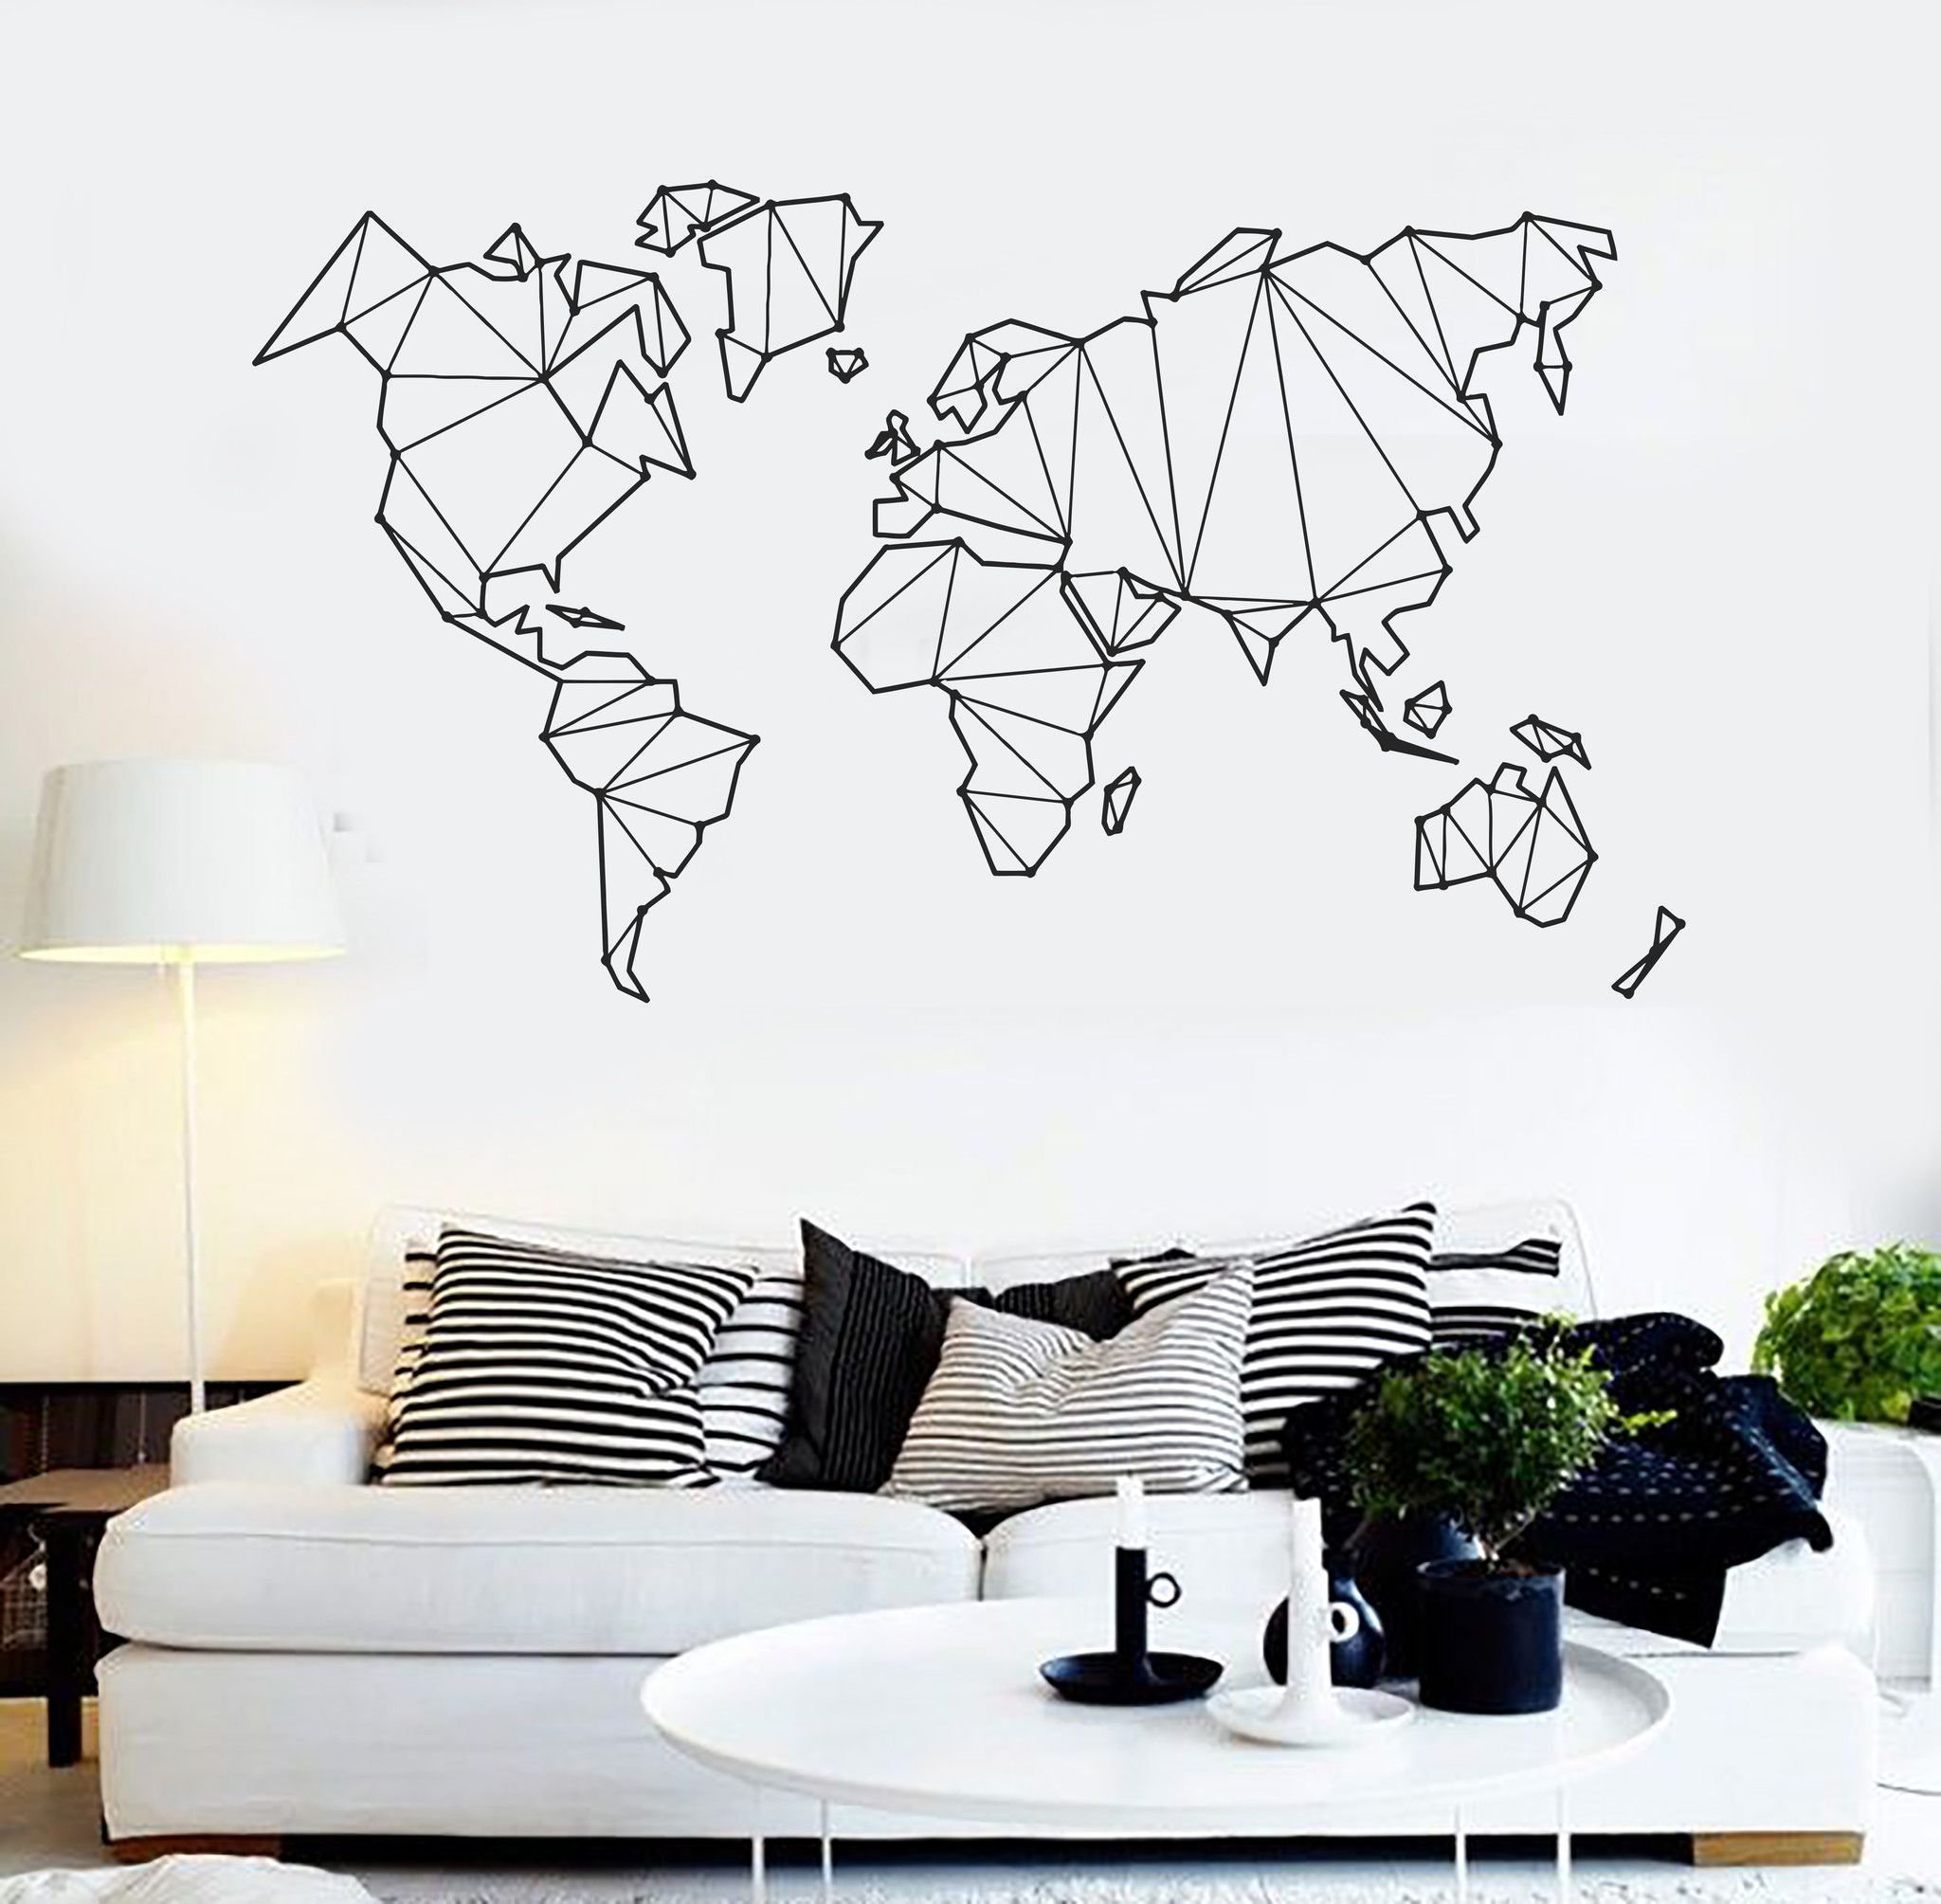 vinyl wall decal abstract map world geography earth stickers vinyl wall decal abstract map world geography earth stickers